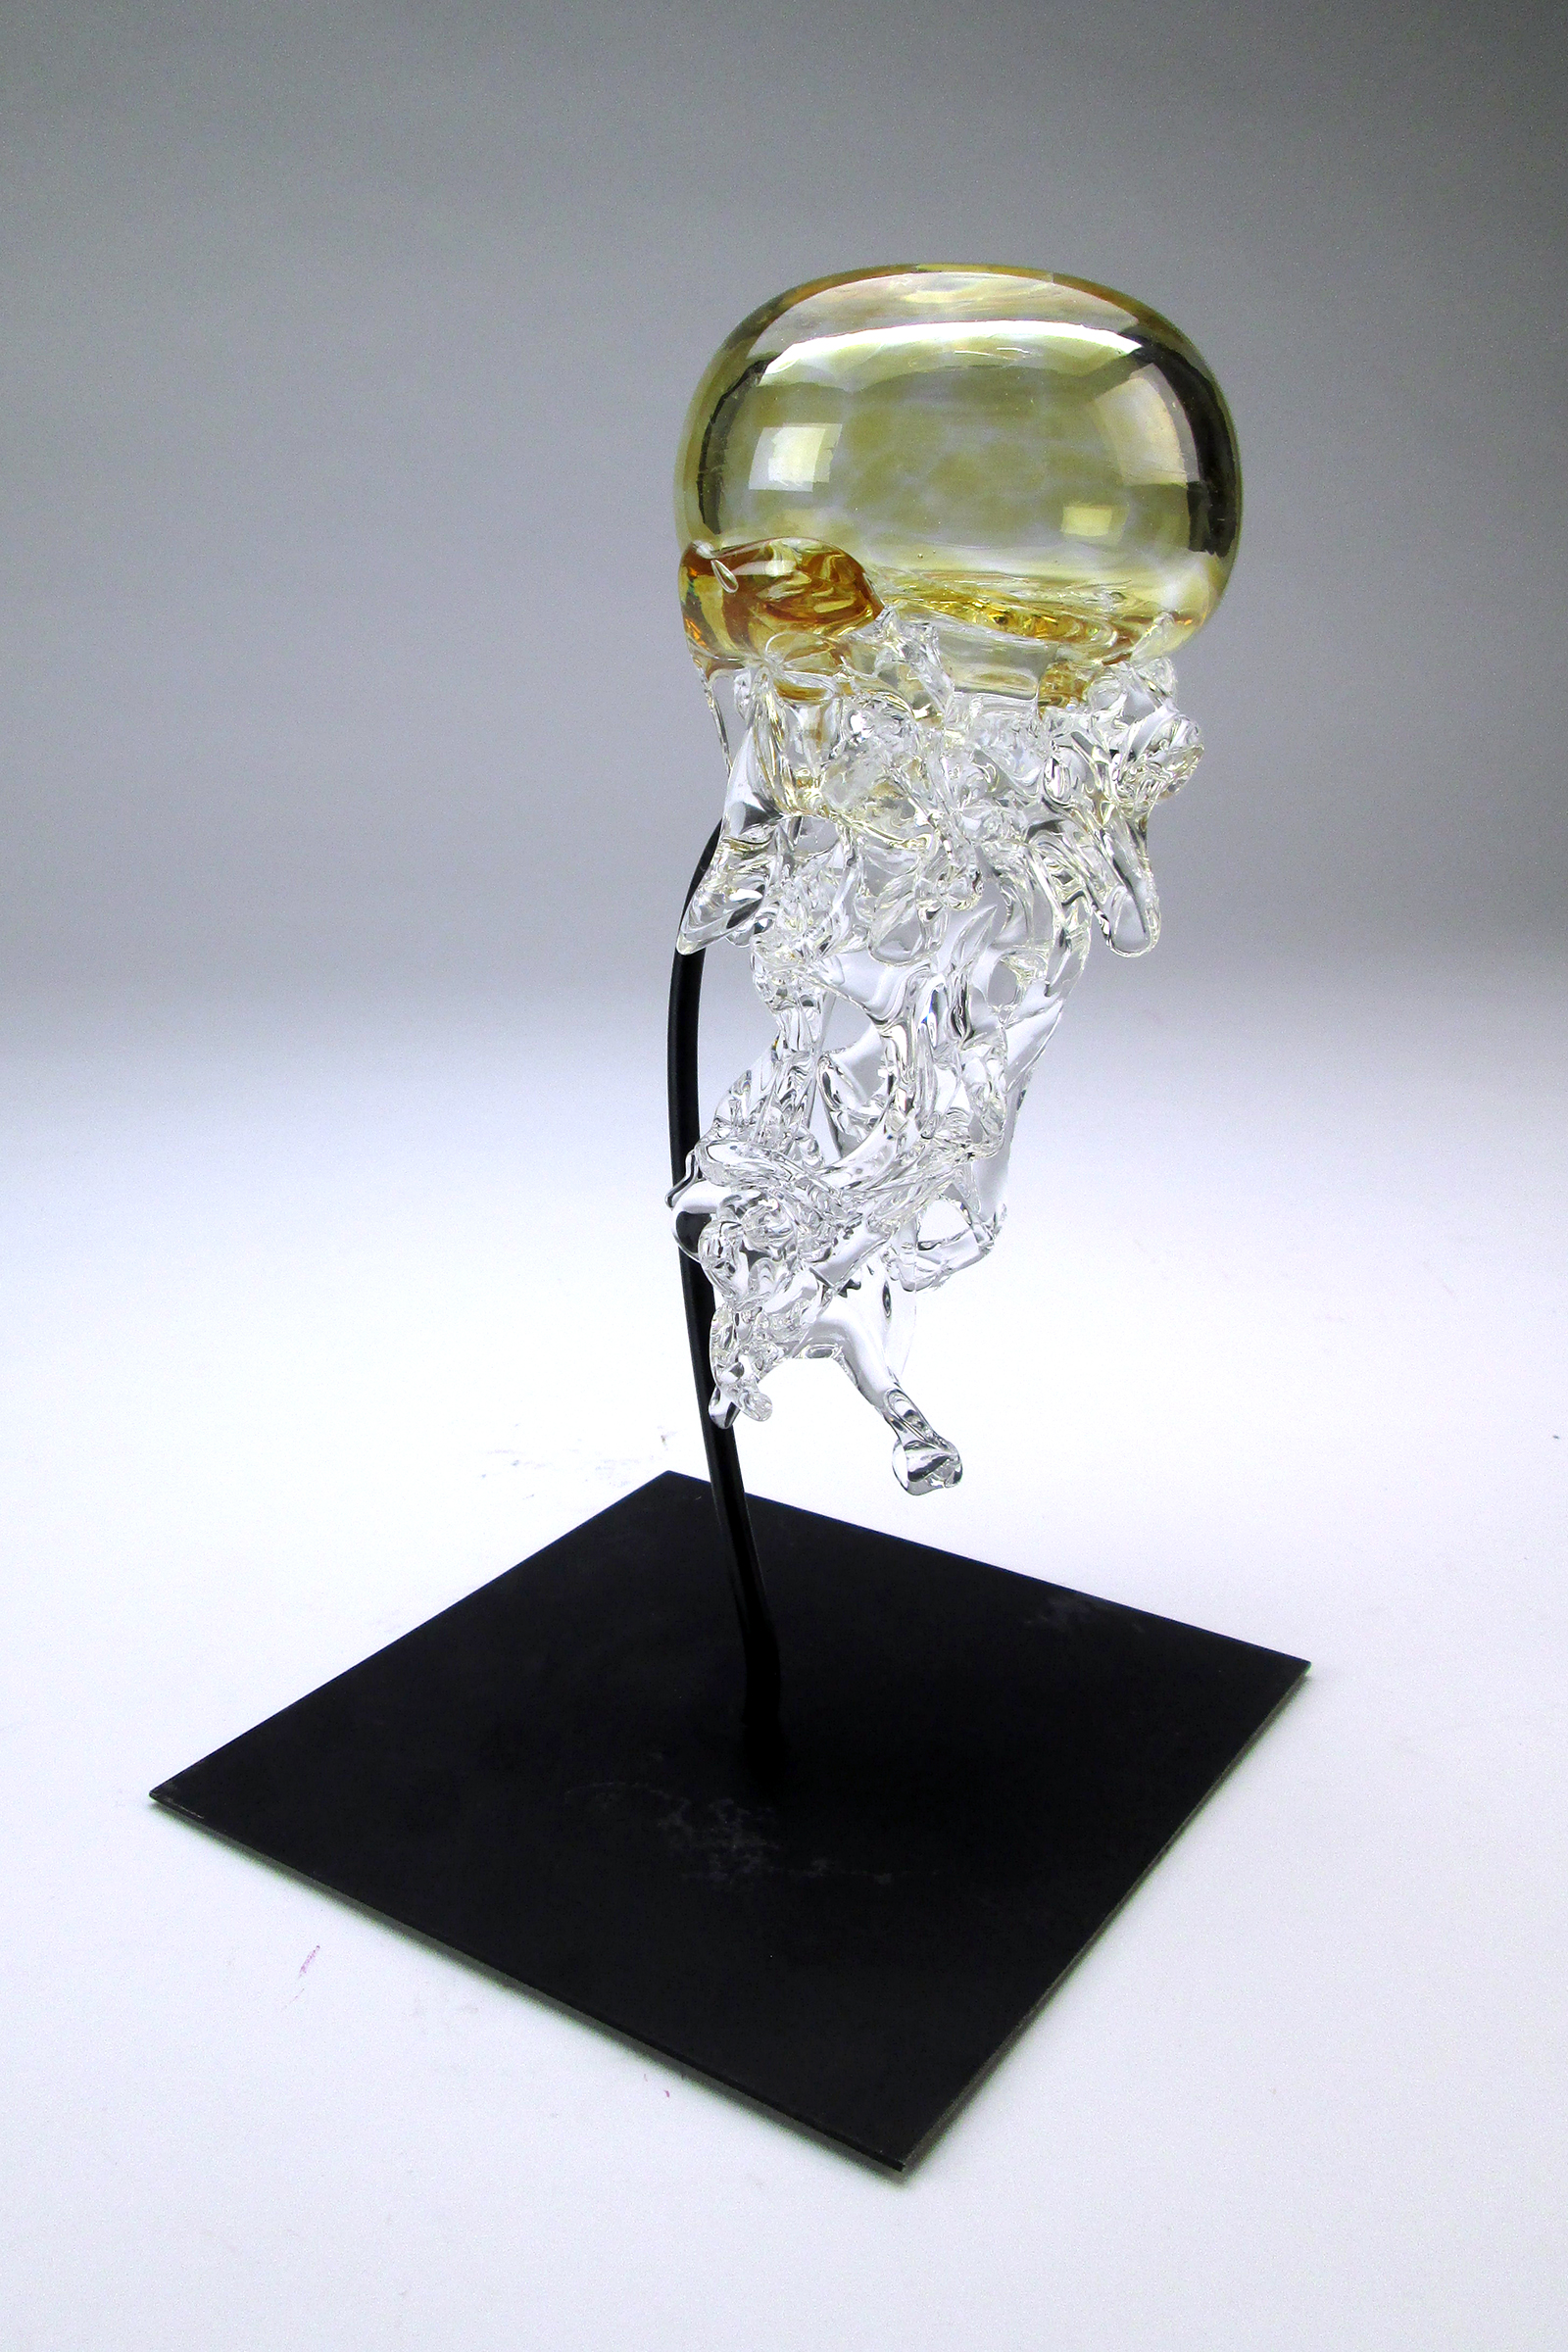 Blown glass jellyfish, 2017 Niche Award Student FInalist